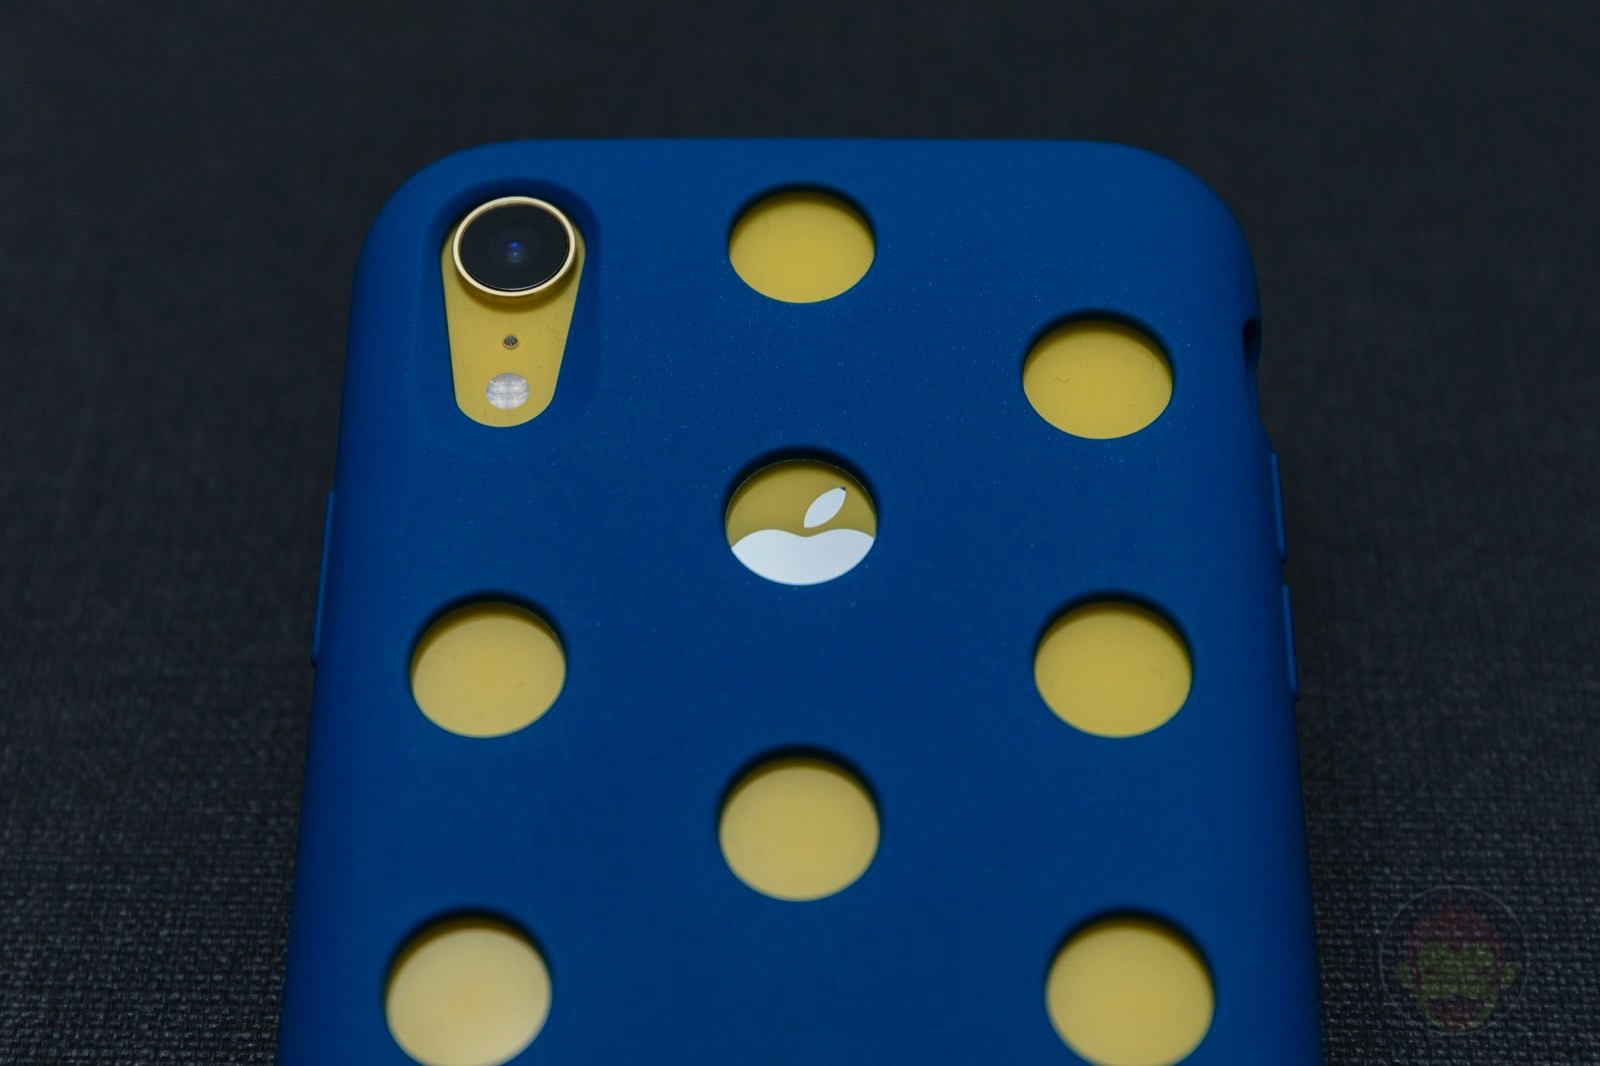 AndMesh-Layer-Case-for-iPhone-05.jpg